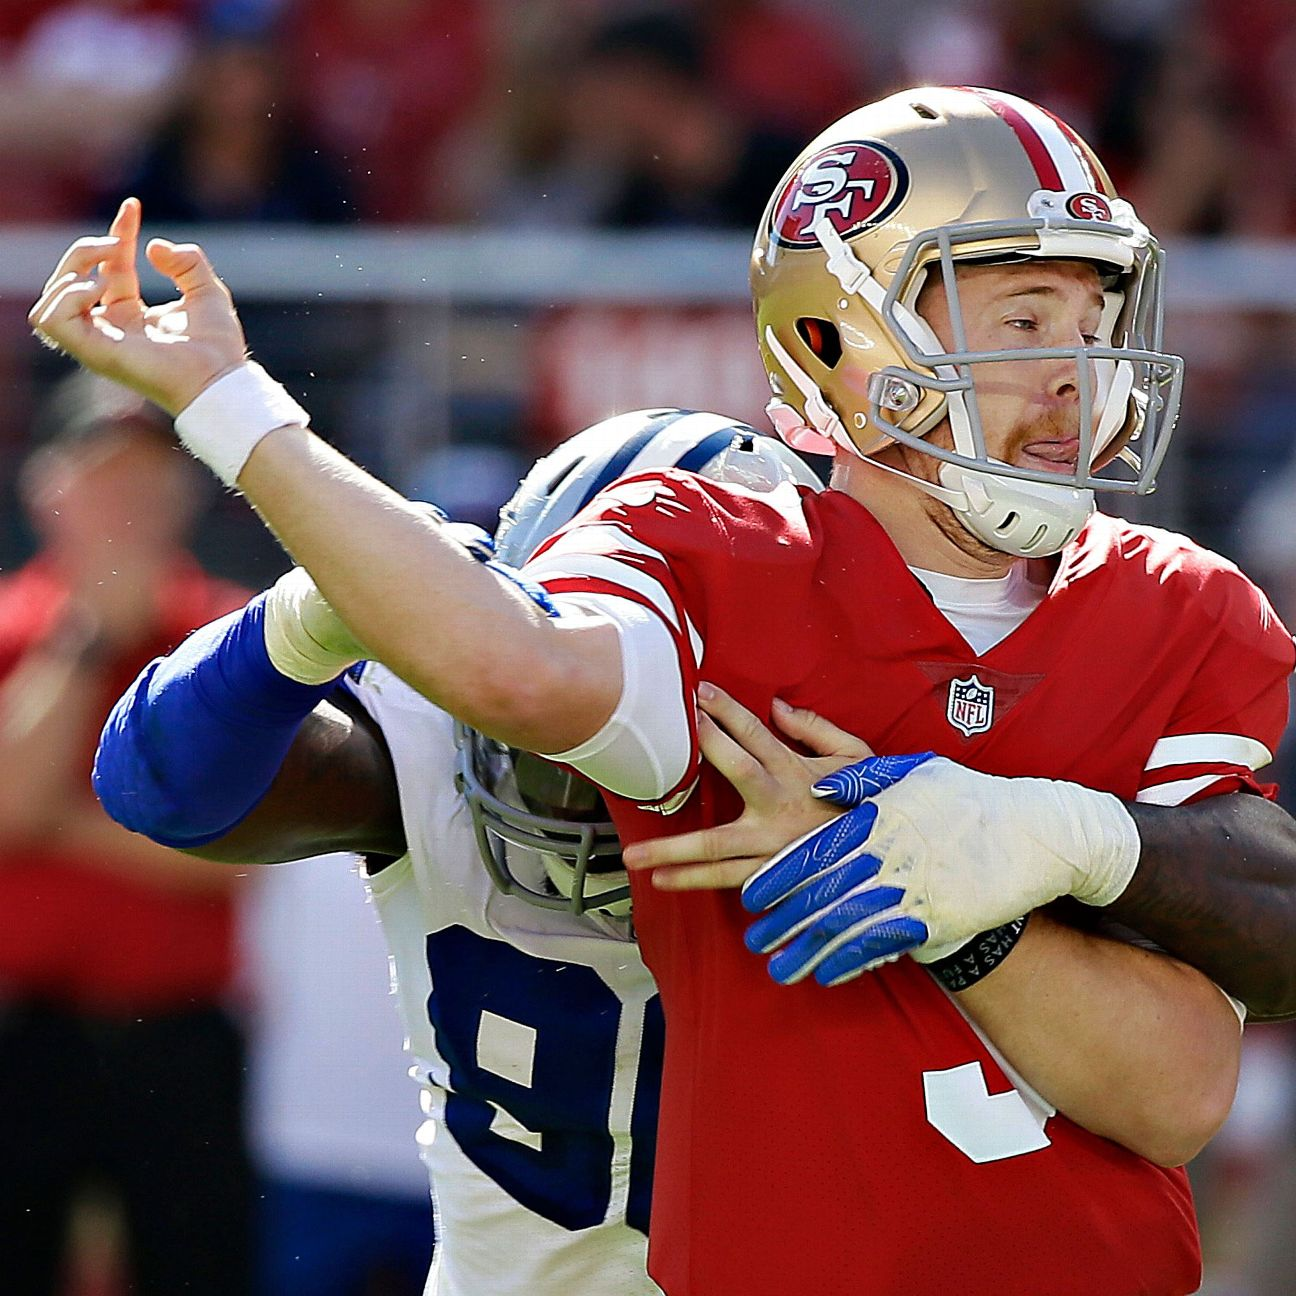 C.J. Beathard, 49ers Have Long Way To Go After Loss To